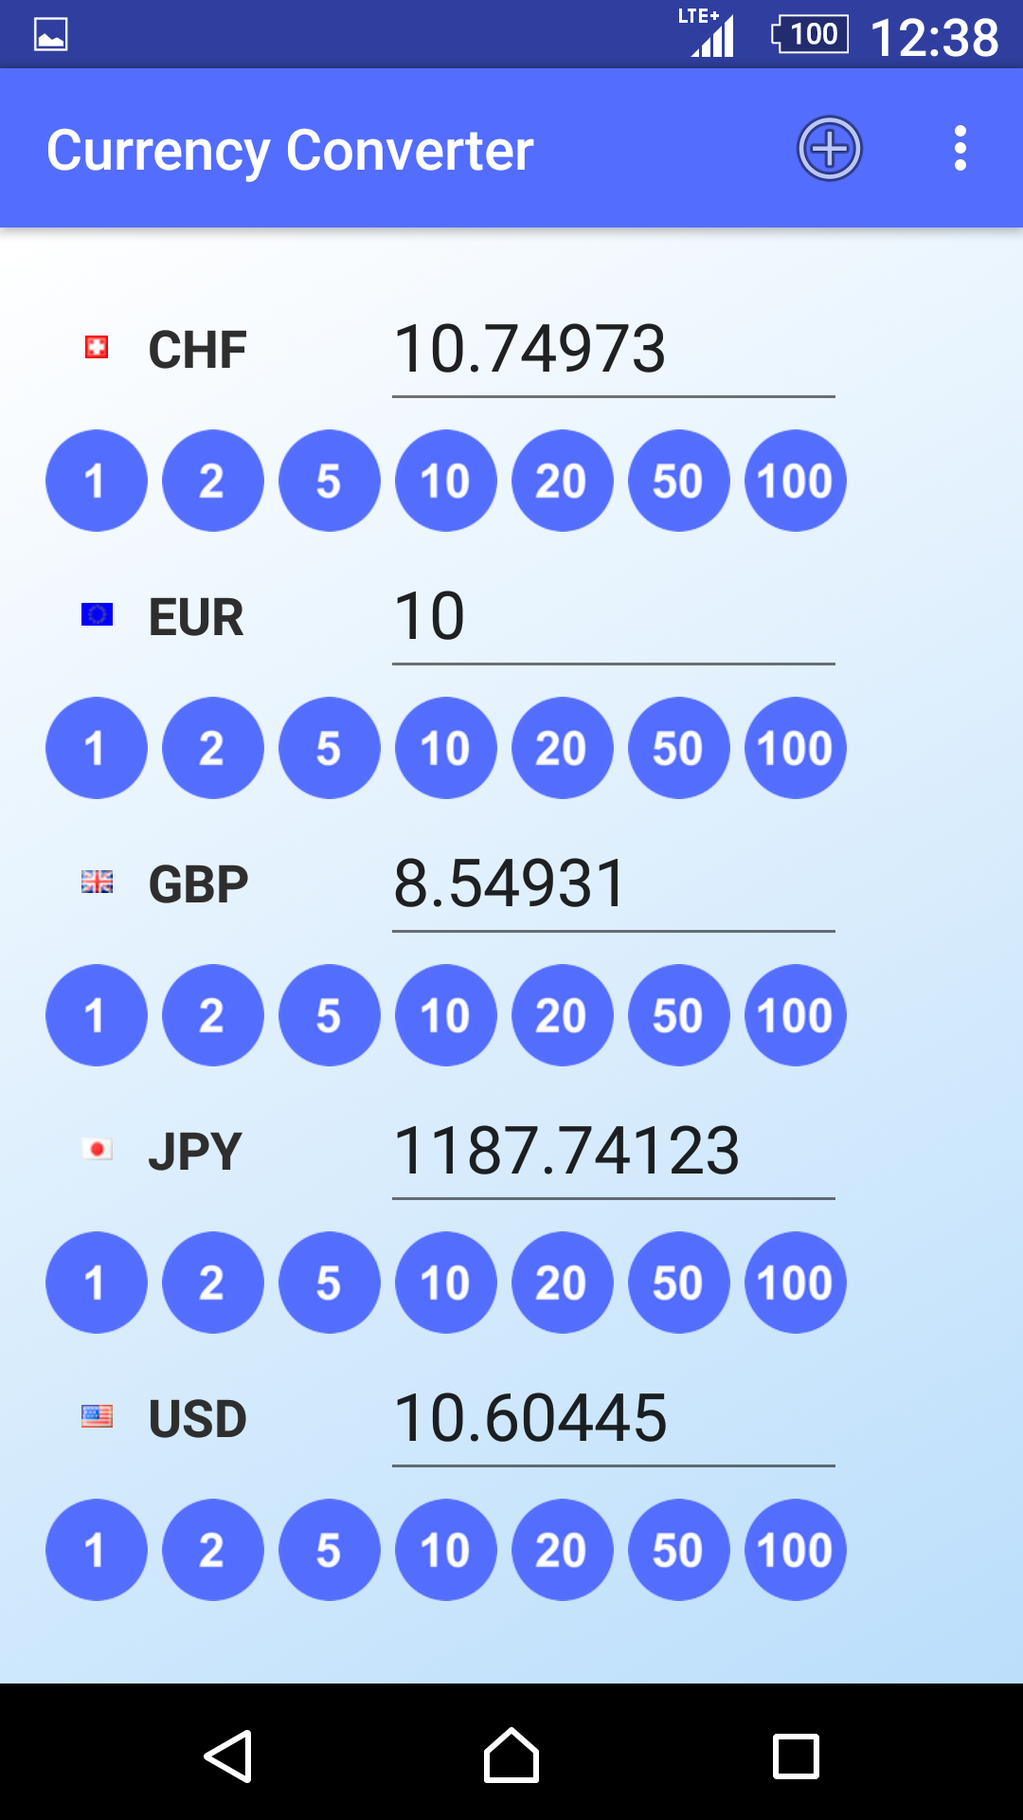 Currency Converter App Screenshot